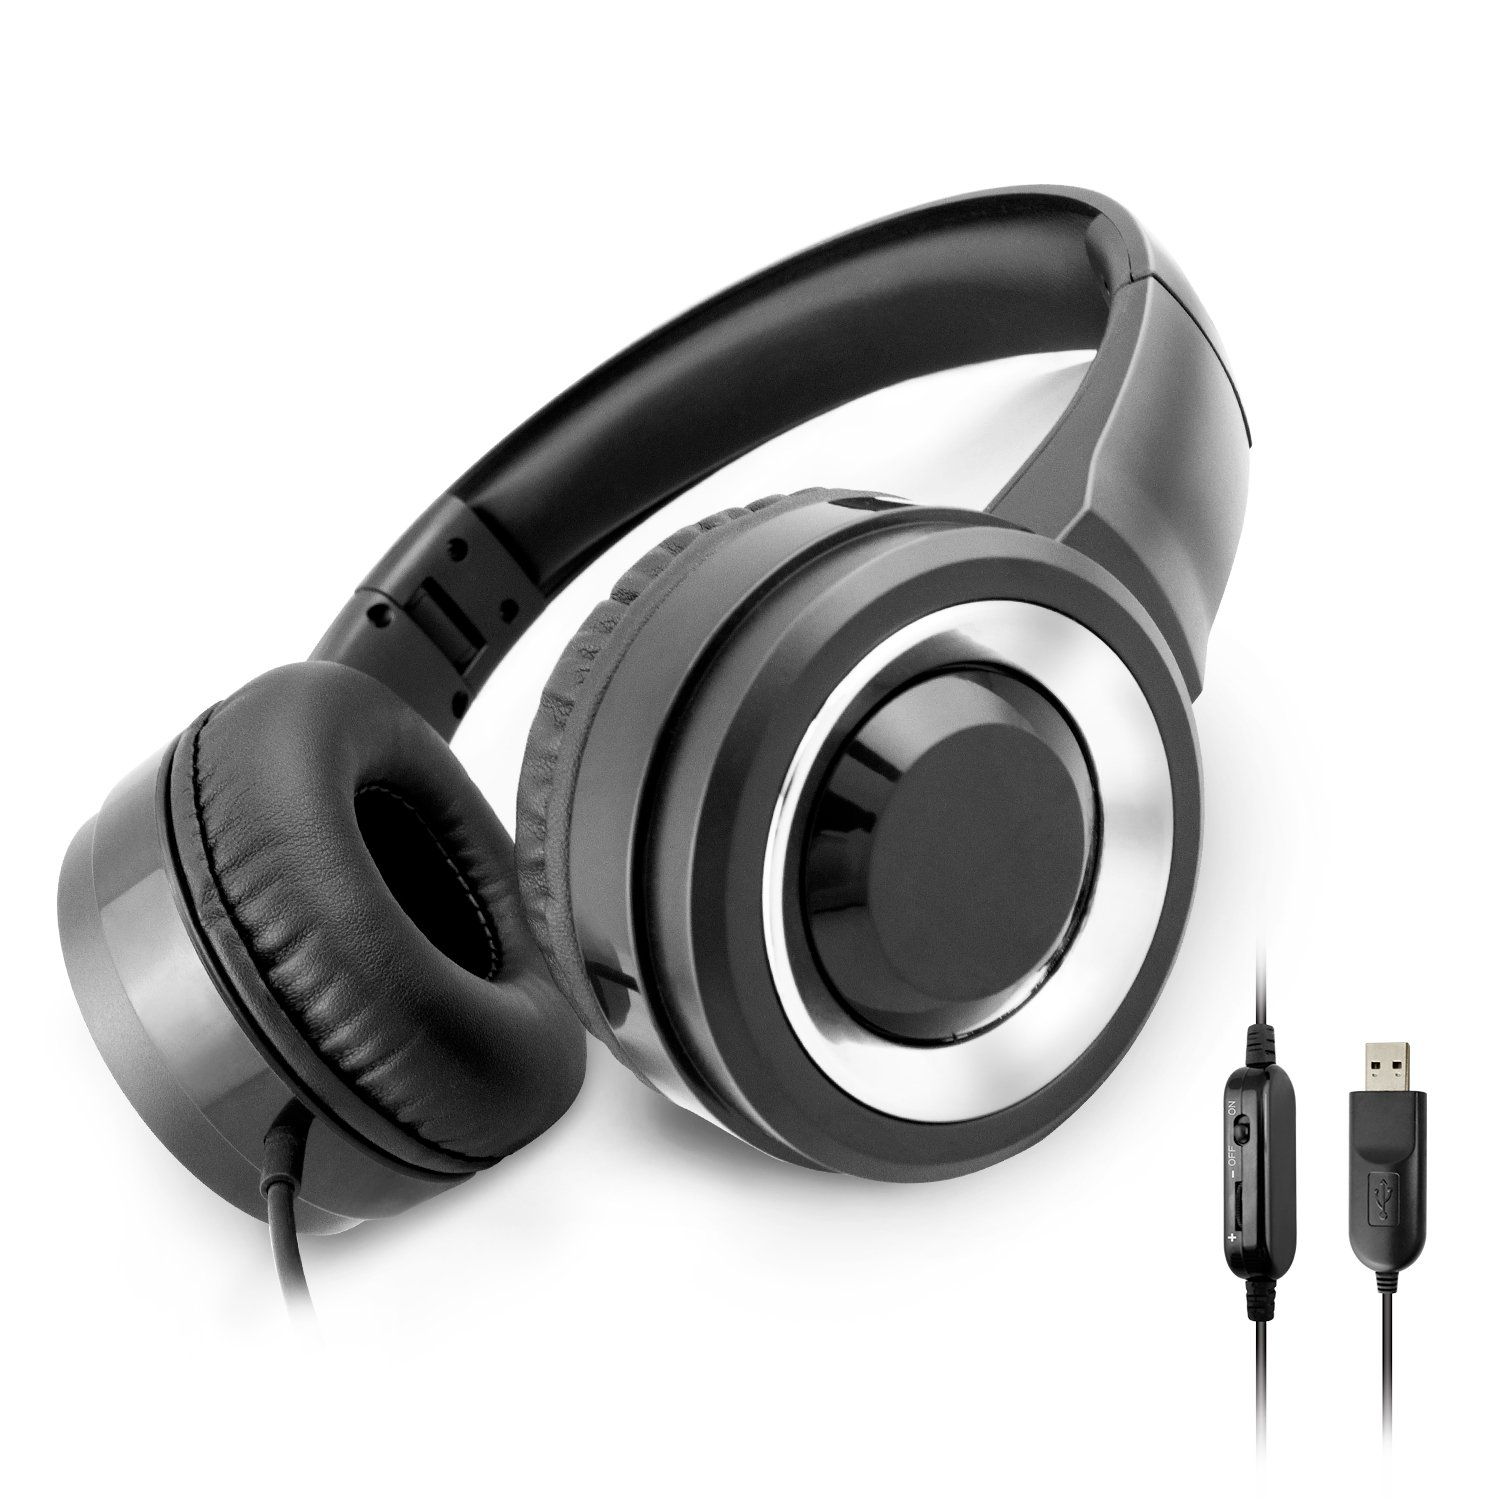 PC Headset, J-EARLE Multi-Use USB Gaming Headset with Microphone, Lightweight Wired Foldable Portable Over Ear Headphone with Stereo Bass & Volume Adjuster for Computer, Mac, Laptop (Black)